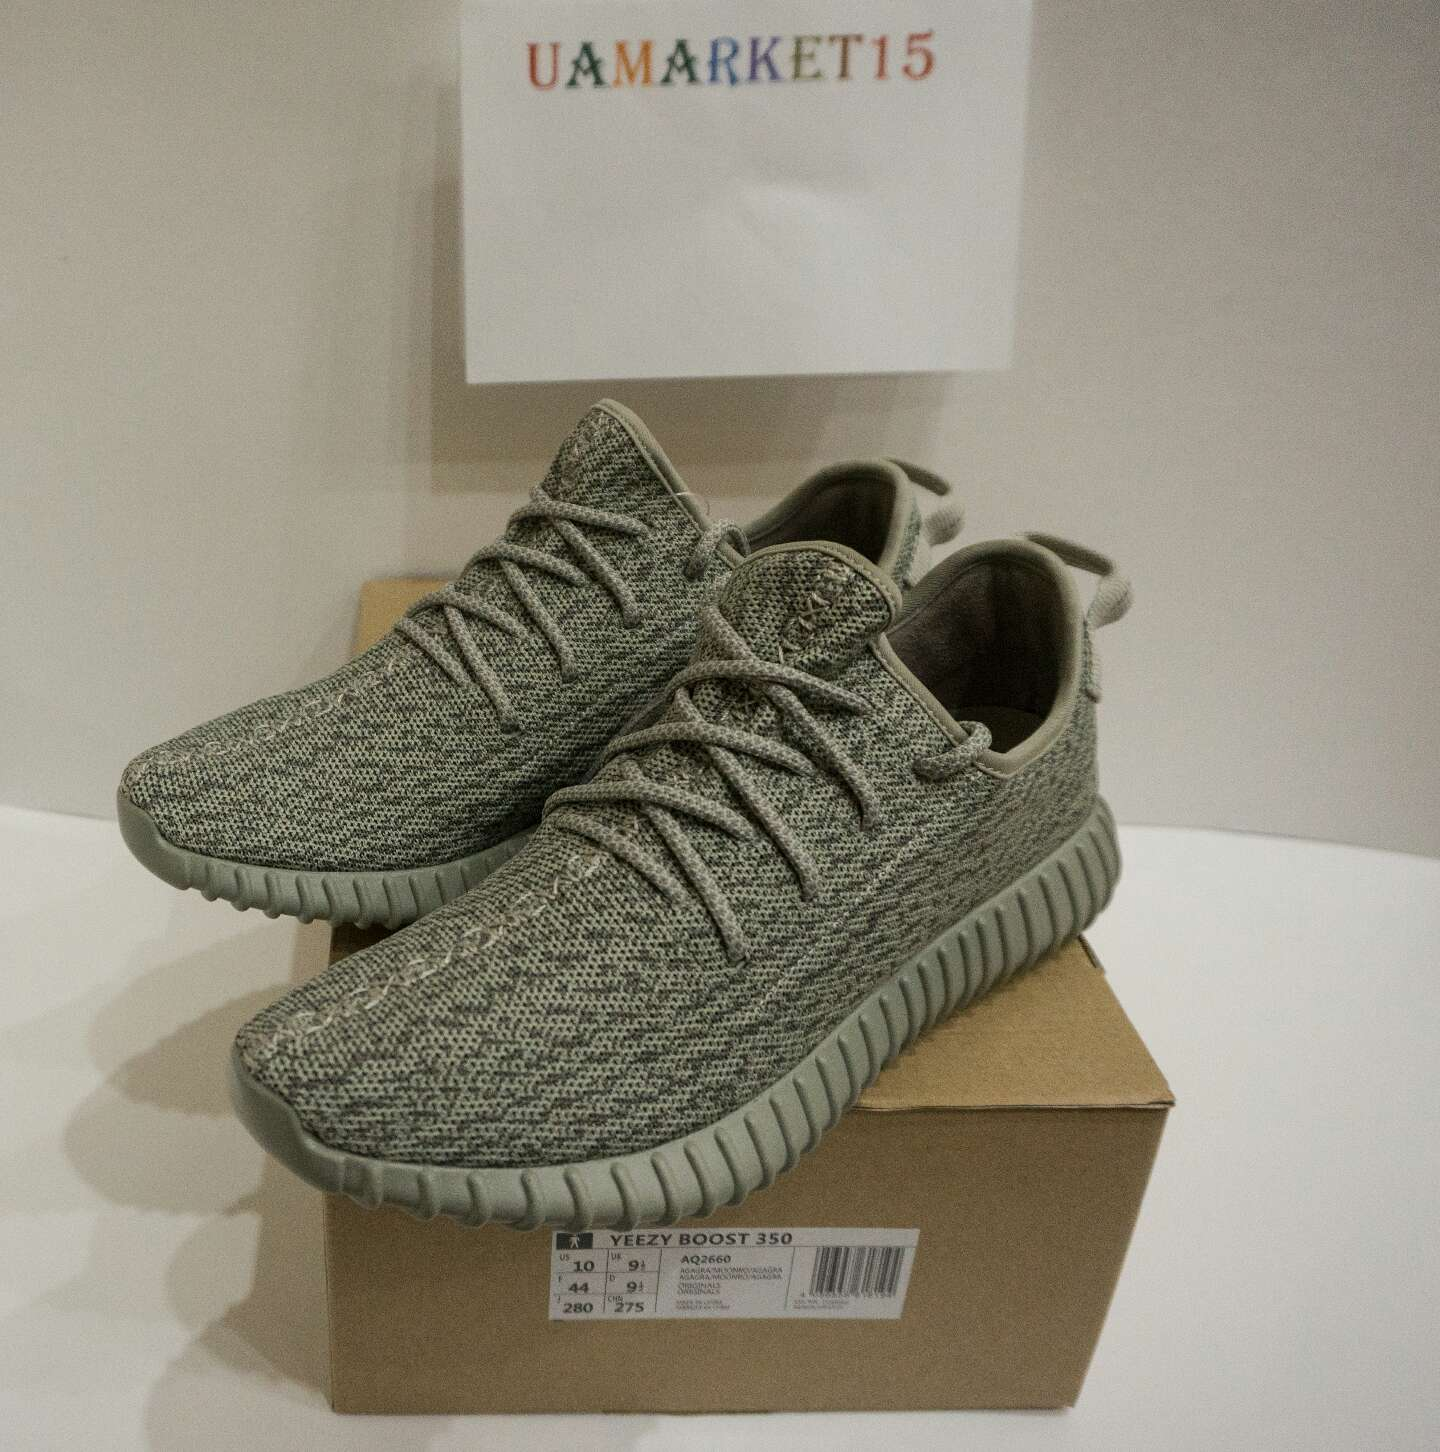 Buy Cheap Yeezy Trainers For Sale, Cheap Yeezy 350 V2 Trainers Outlet